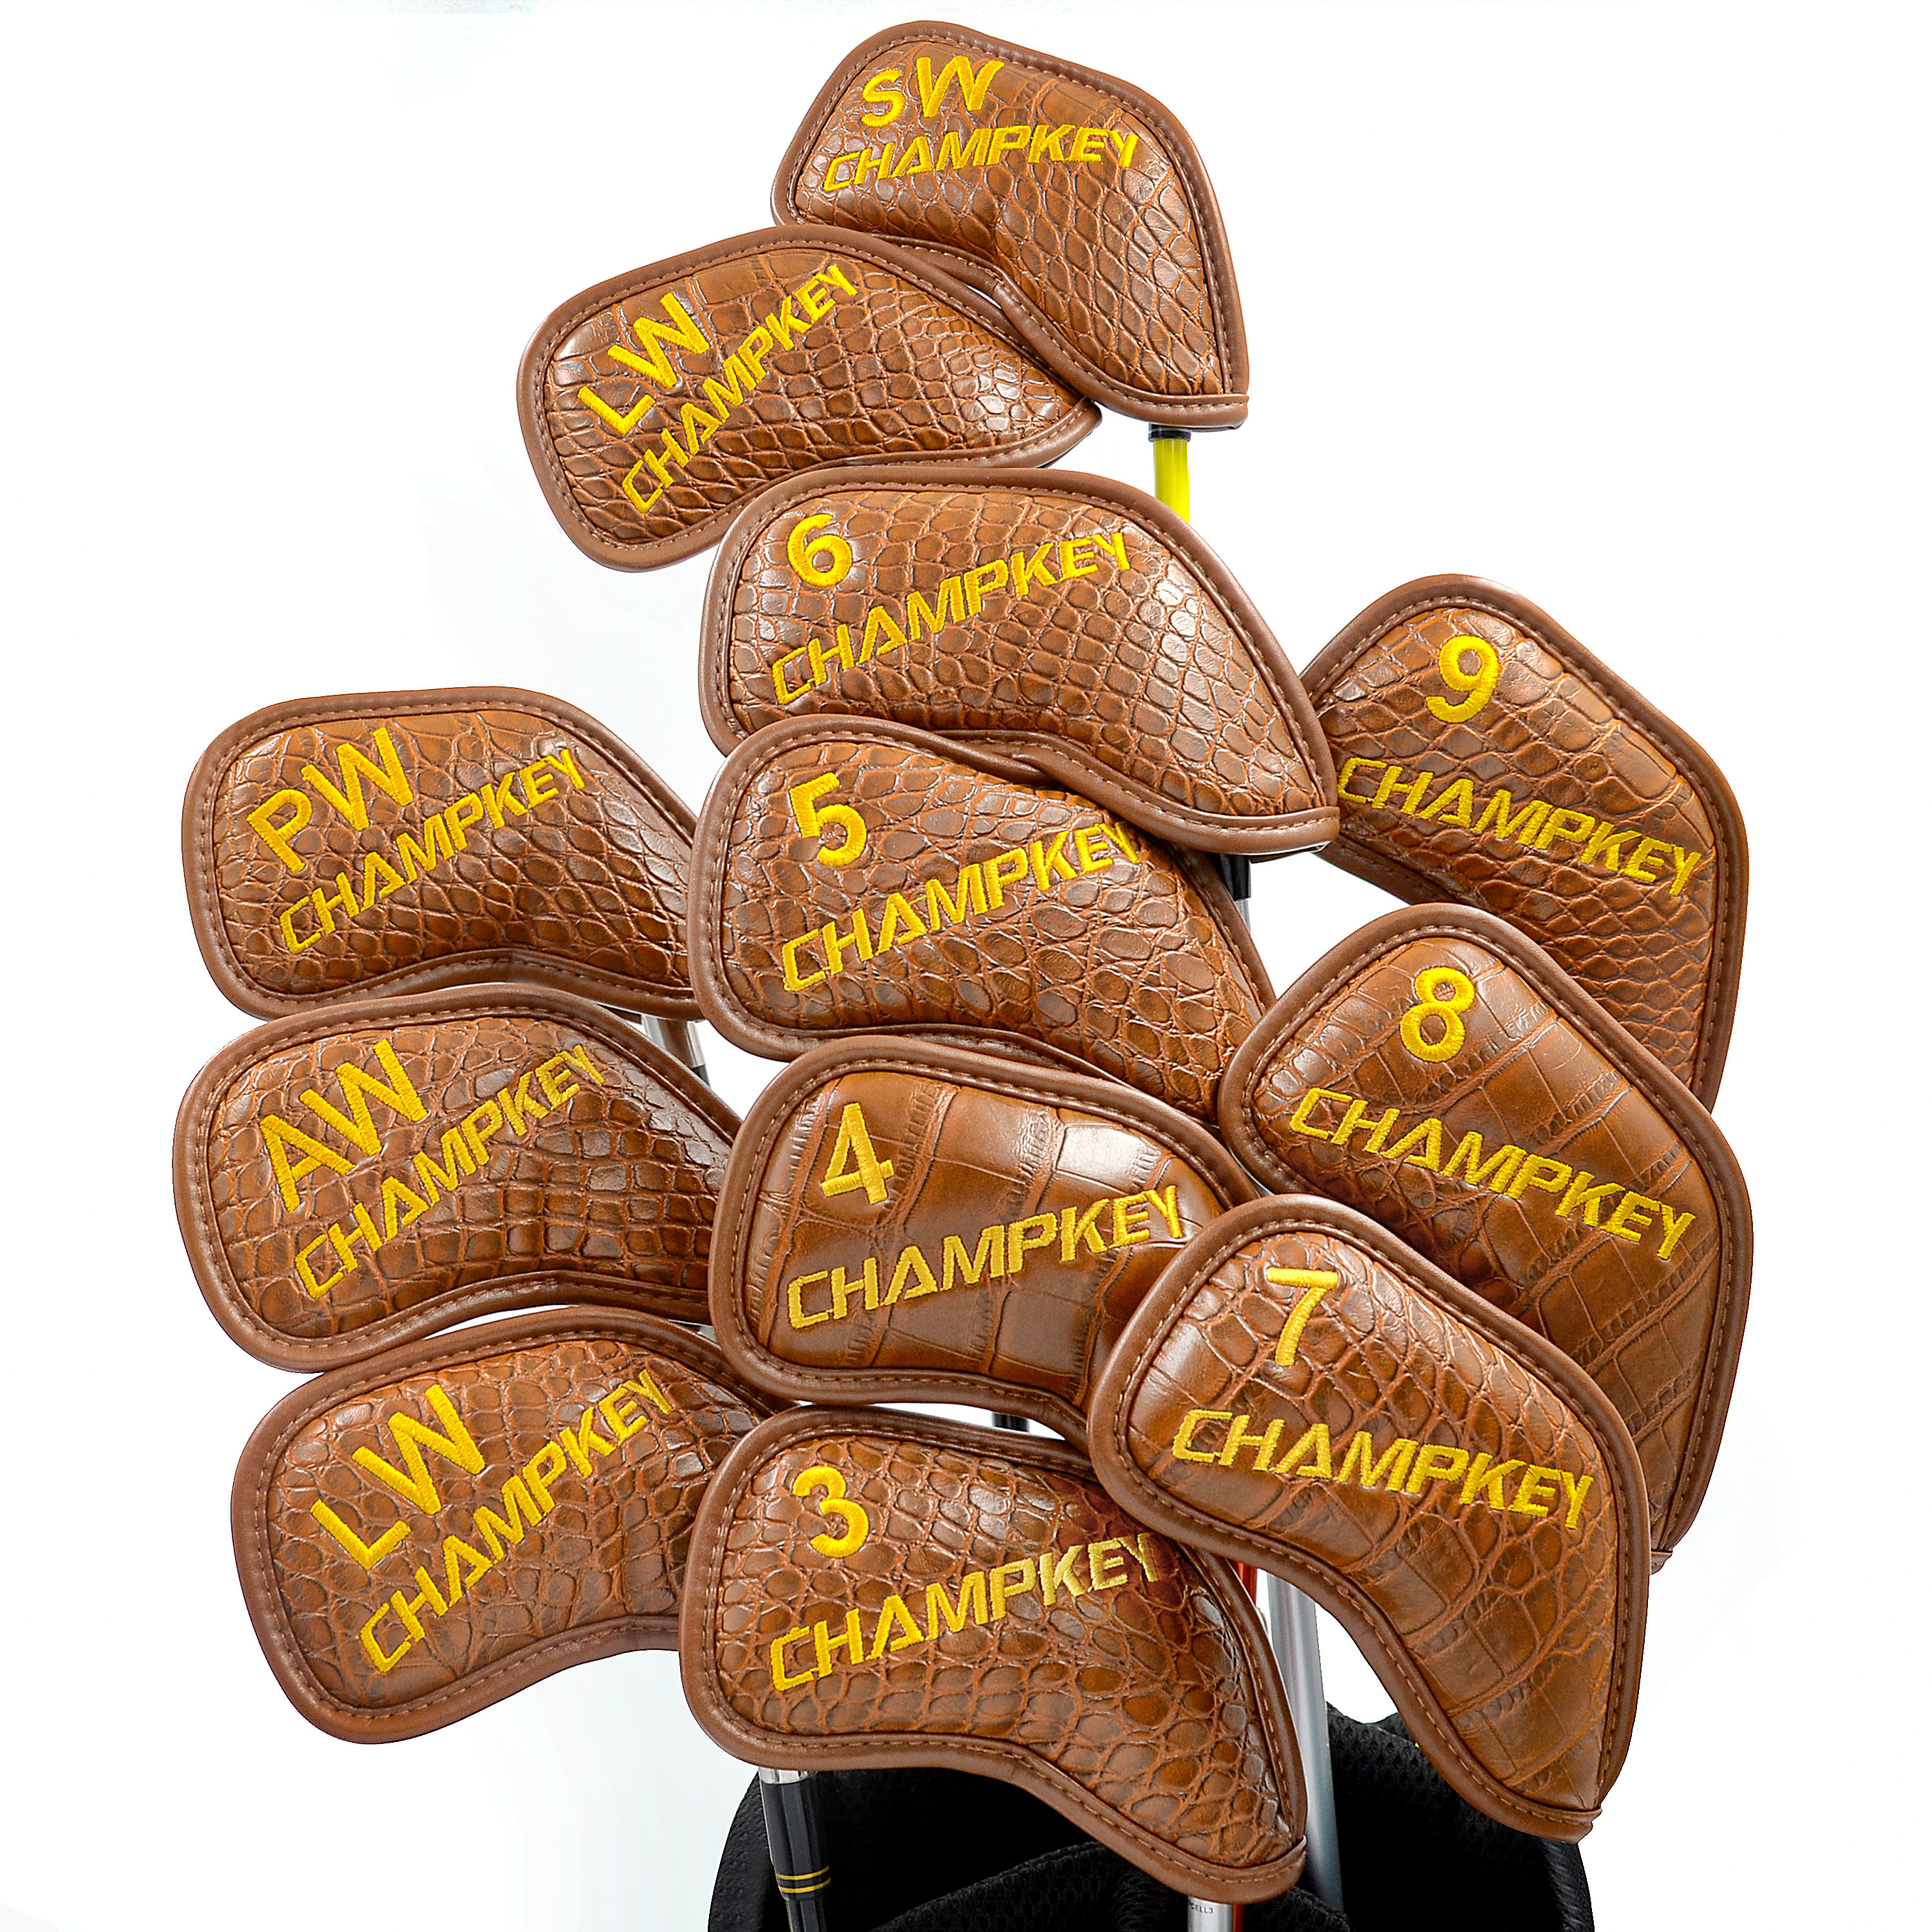 NEW Champkey Golf Head Cover 12PCS Golf Club Iron Putter Protector Set 2 Colors Headcover Accessory Ball Head Protective Cover